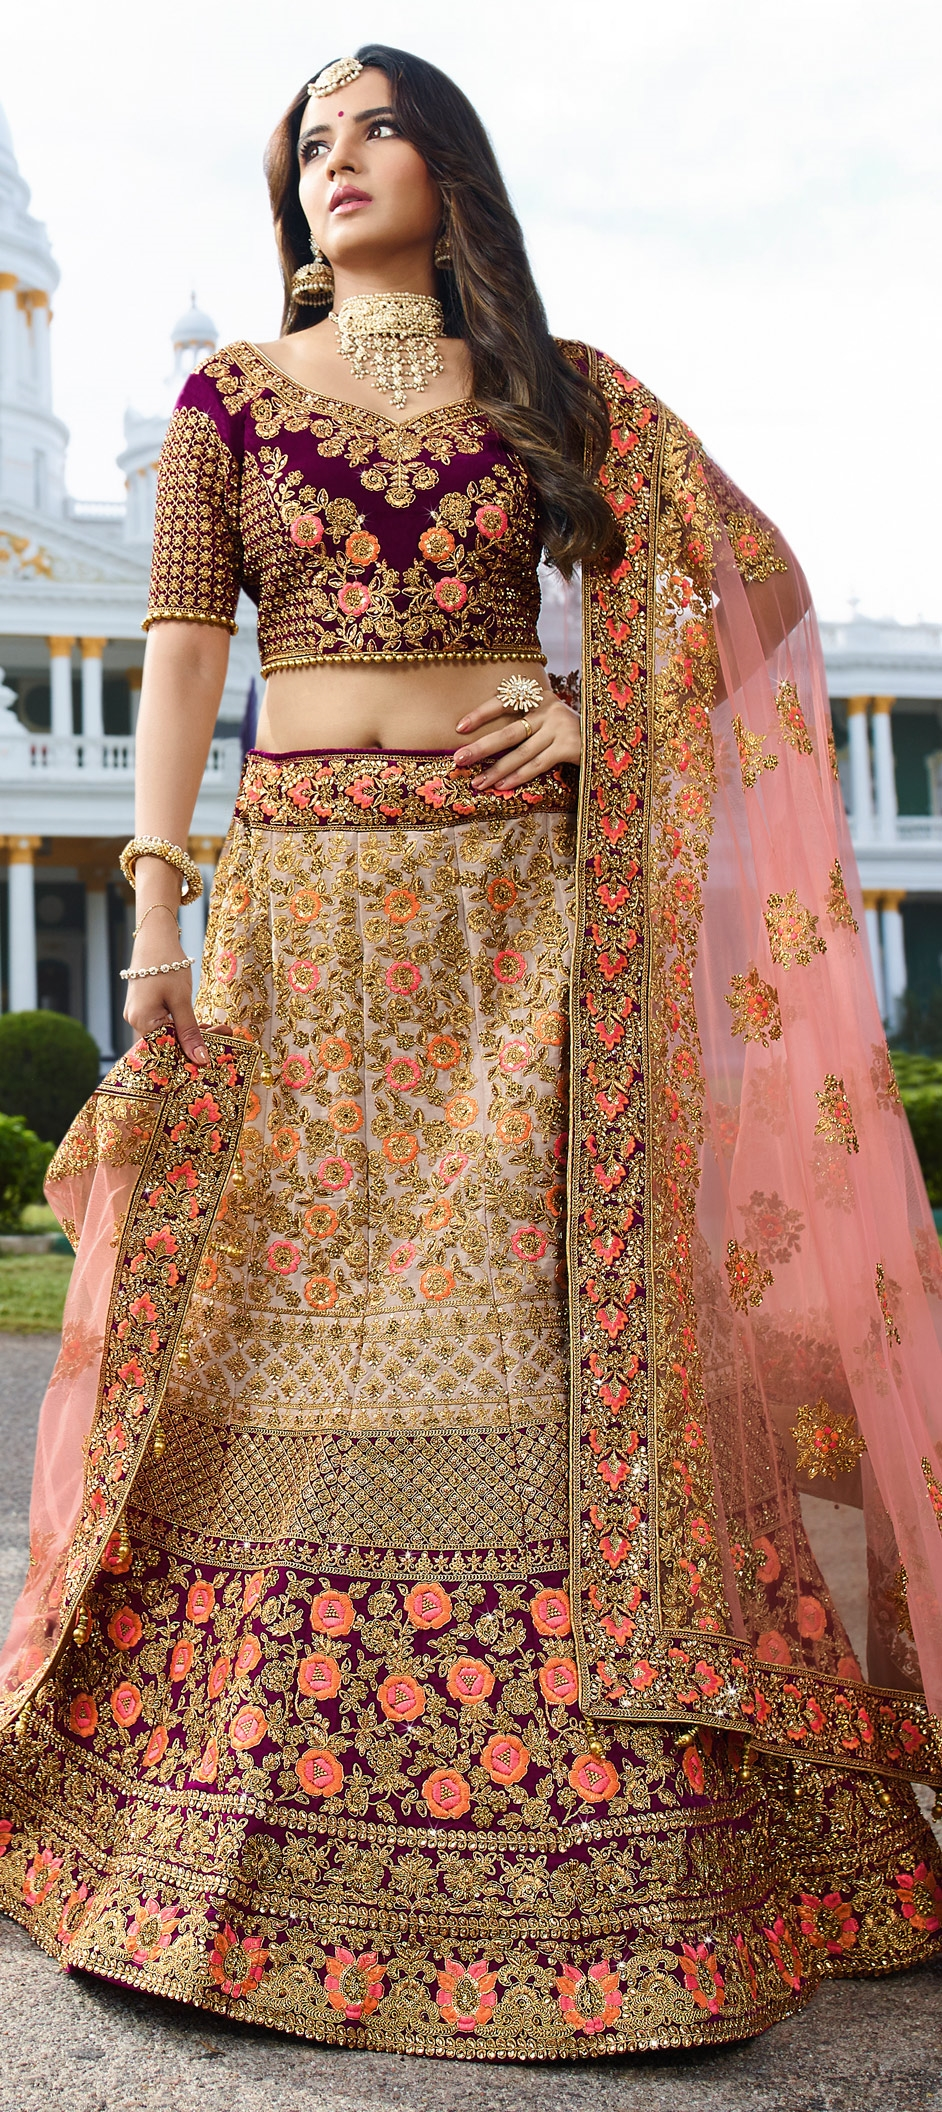 BE THE MOST BEAUTIFUL BRIDE WITH THESE INDIAN WEDDING LEHENGAS